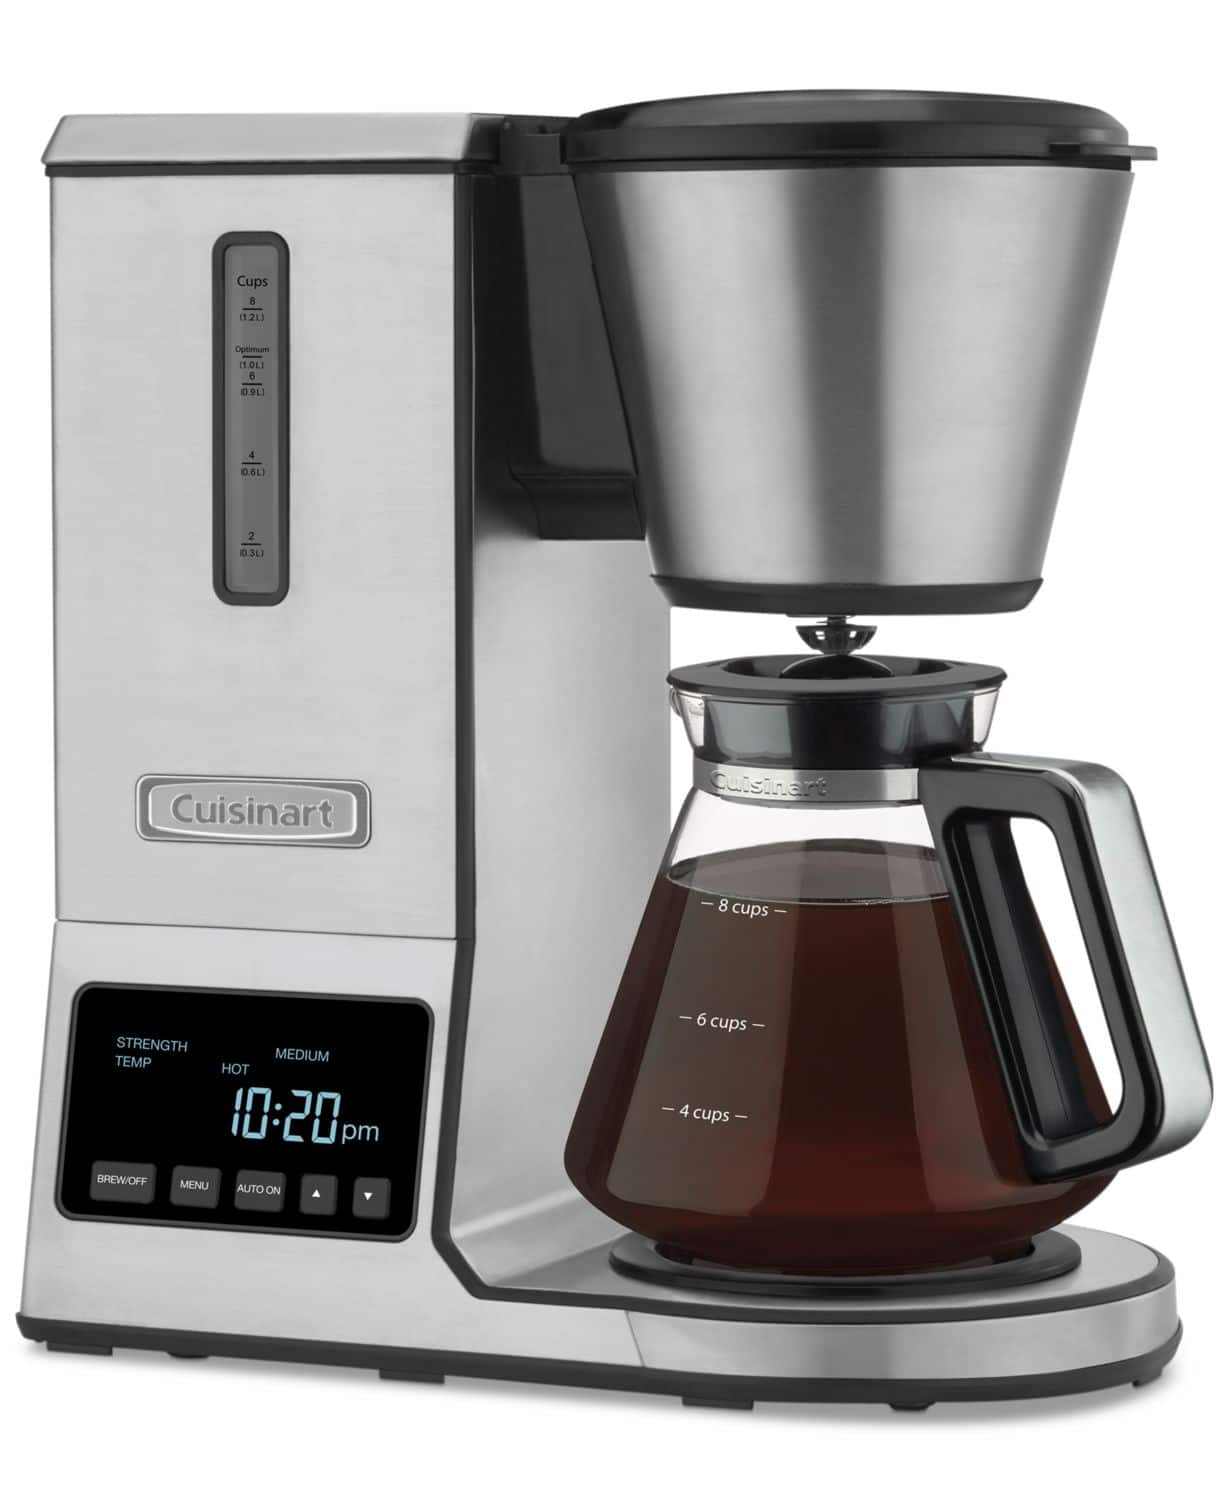 Cuisinart CPO-800 Pureprecision 8-Cup Pour-Over Coffee Brewer PLUS Get $20 in Macys Money for $111.93